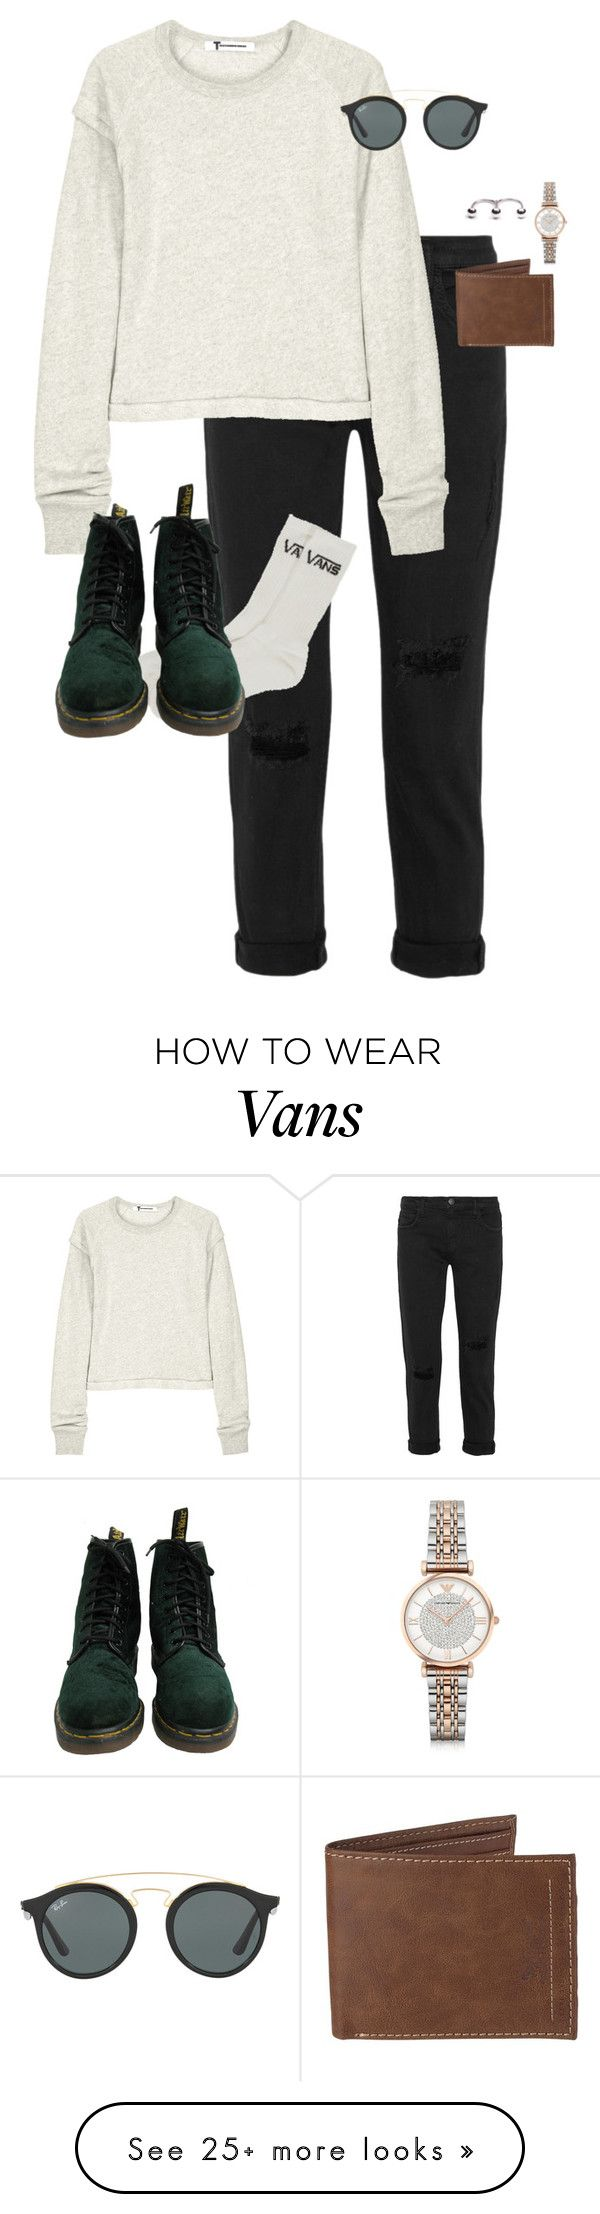 """""""Untitled #12941"""" by alexsrogers on Polyvore featuring Current/Elliott, Vans, T By Alexander Wang, Dr. Martens, Ray-Ban, Levi's and Emporio Armani"""